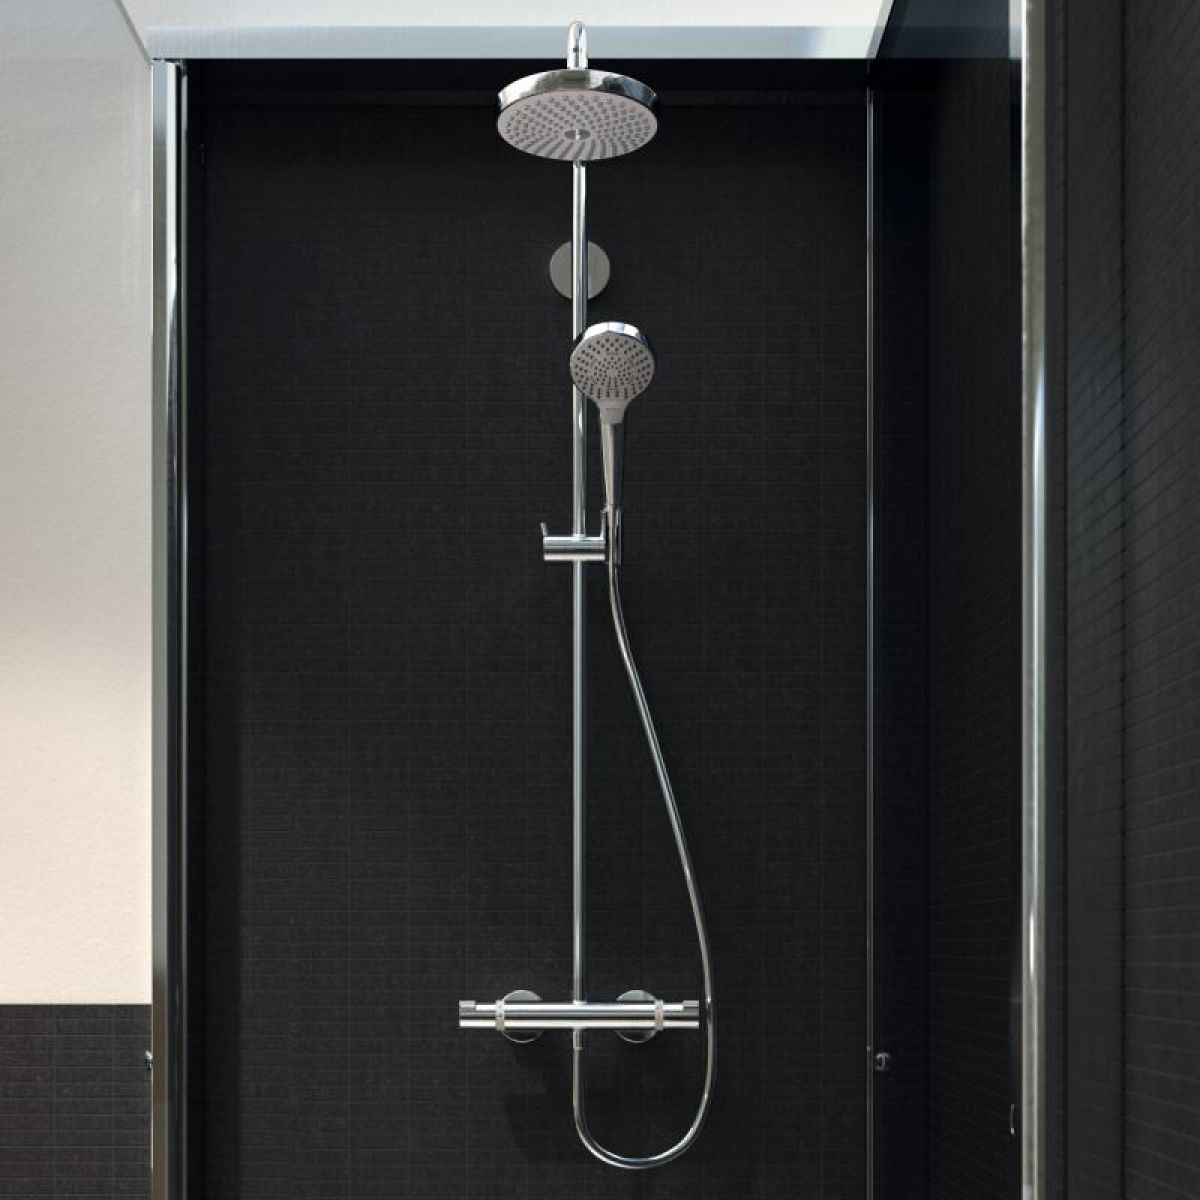 Hansgrohe raindance select s 240 1jet showerpipe uk for Unterschied grohe hansgrohe